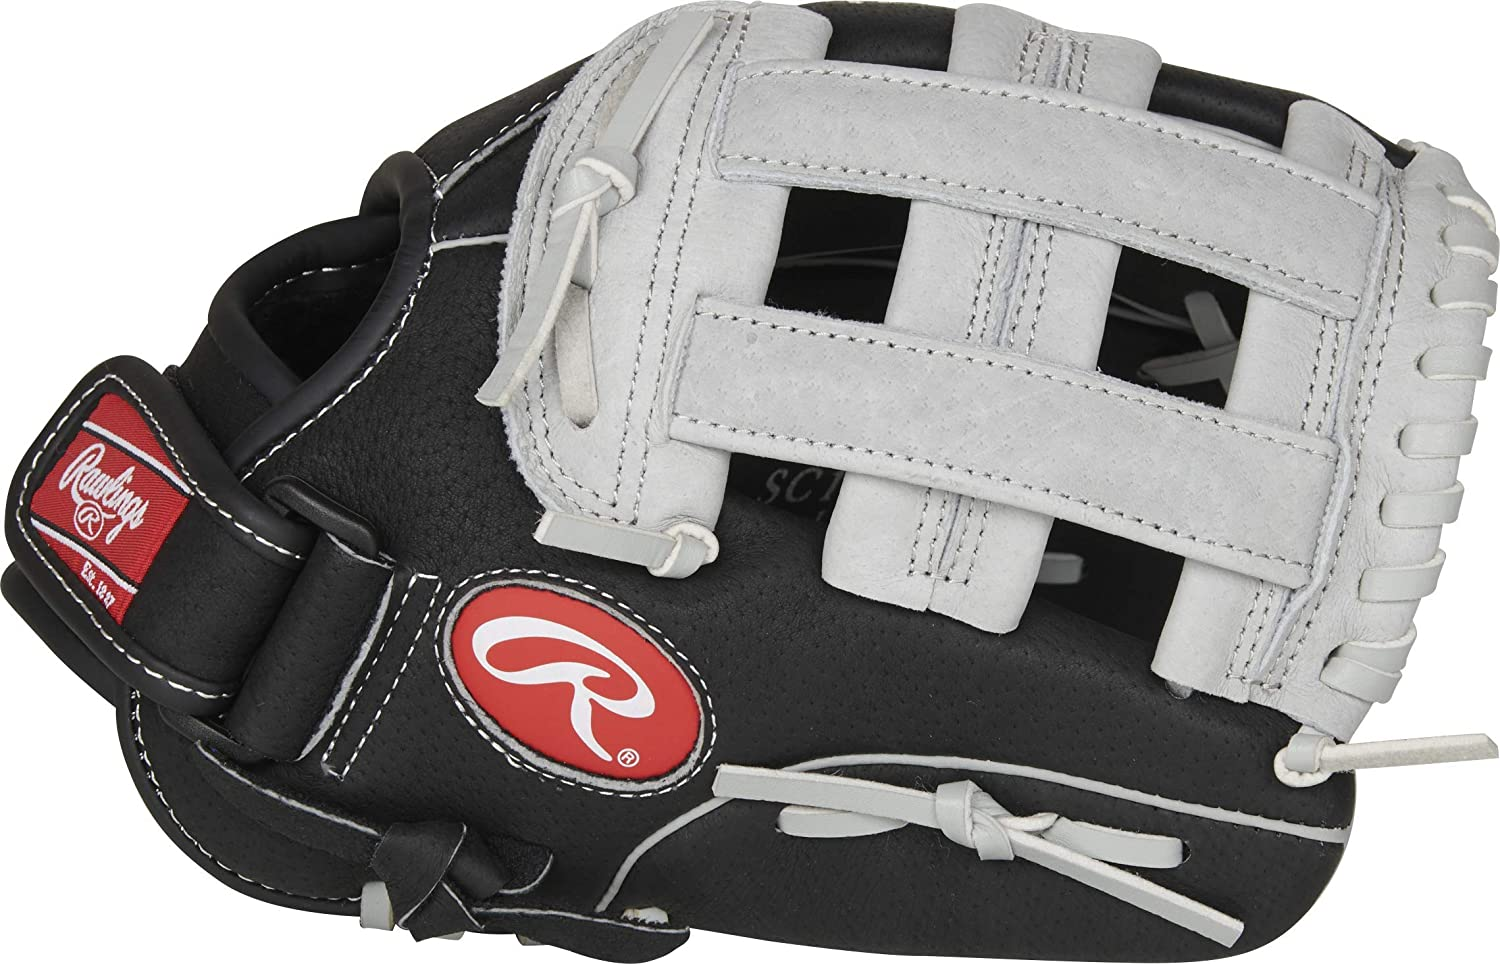 Rawlings Sure Catch Youth Baseball Glove Series (9.5-11.5 inch Baseball/Tball Gloves)